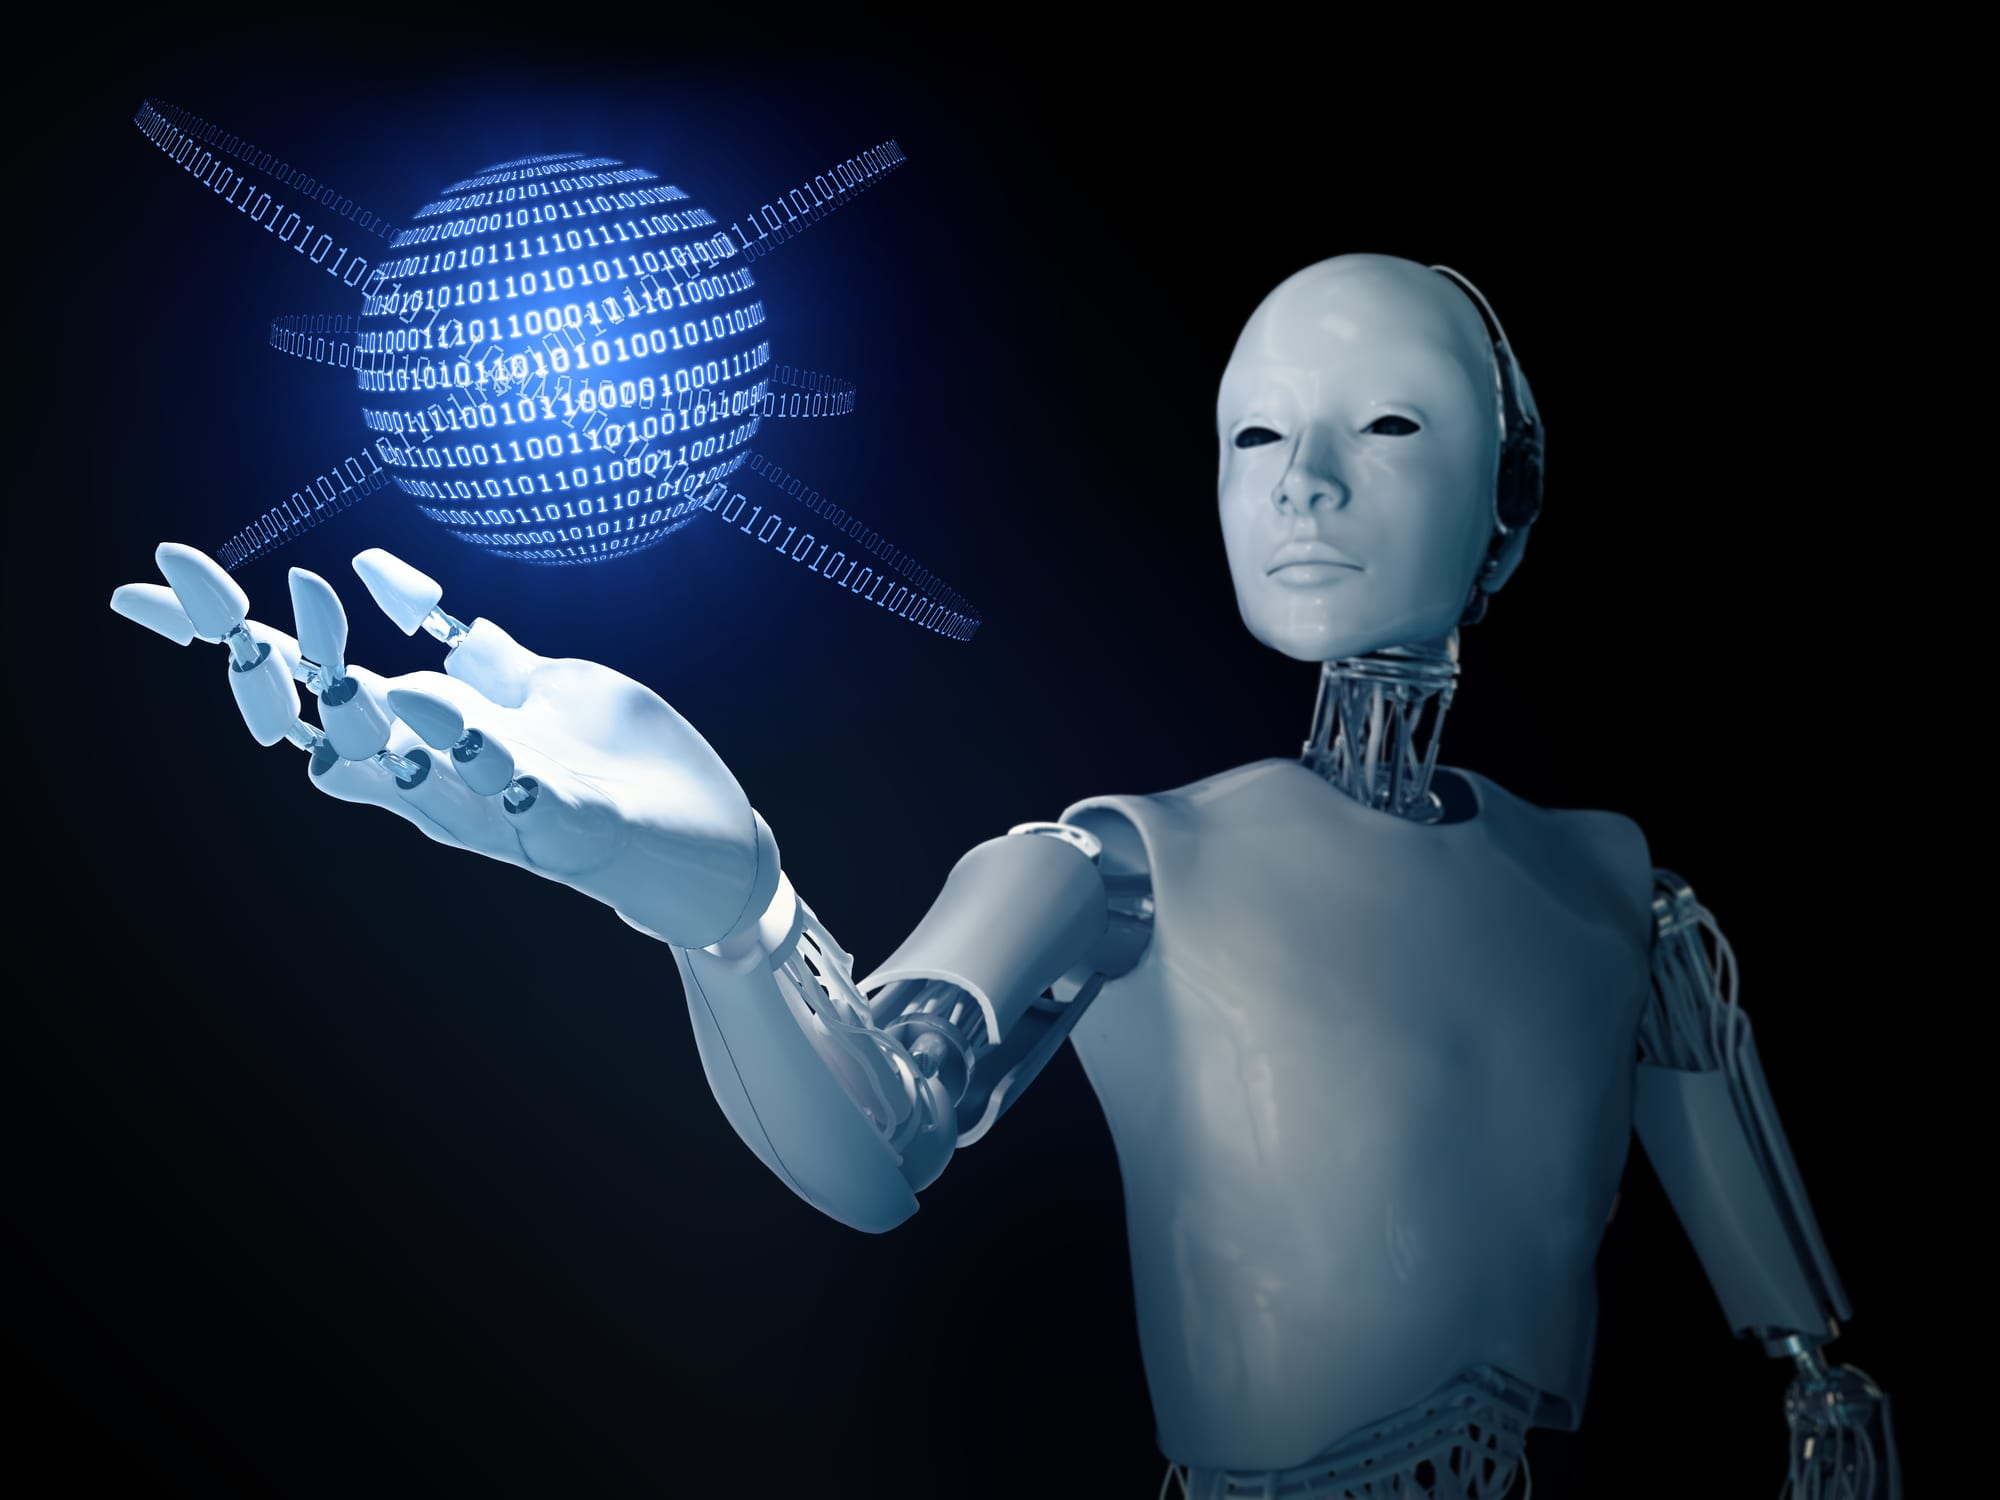 Artificial intelligence and machine learning are the next frontiers for ETFs, says industry pro